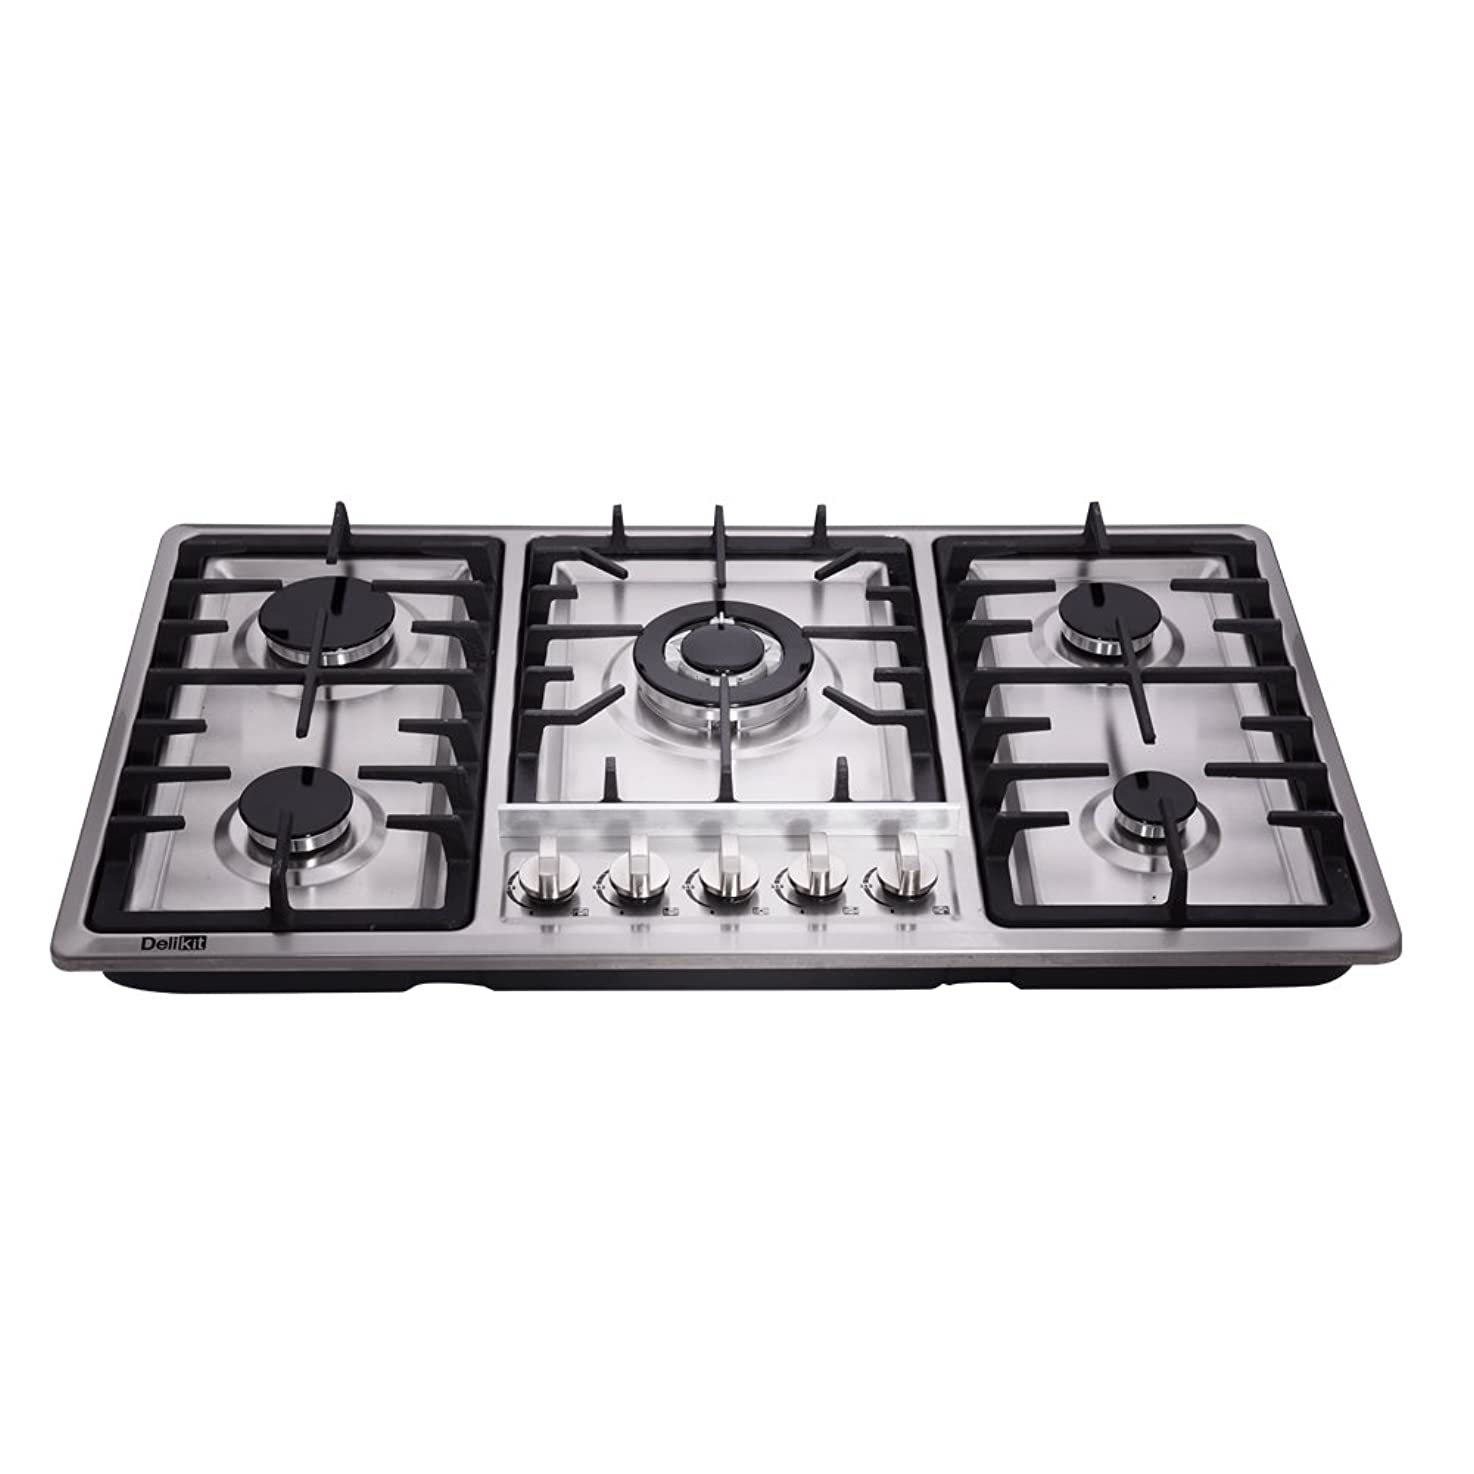 DeliKit DK258-A01 34 inch Gas Cooktop gas hob 5 burners LPG/NG Dual Fuel 5 Sealed Burners Stainless Steel 5 Burner Built-In gas hob 110V AC pulse ignition gas stove vevioflhdbjnk2